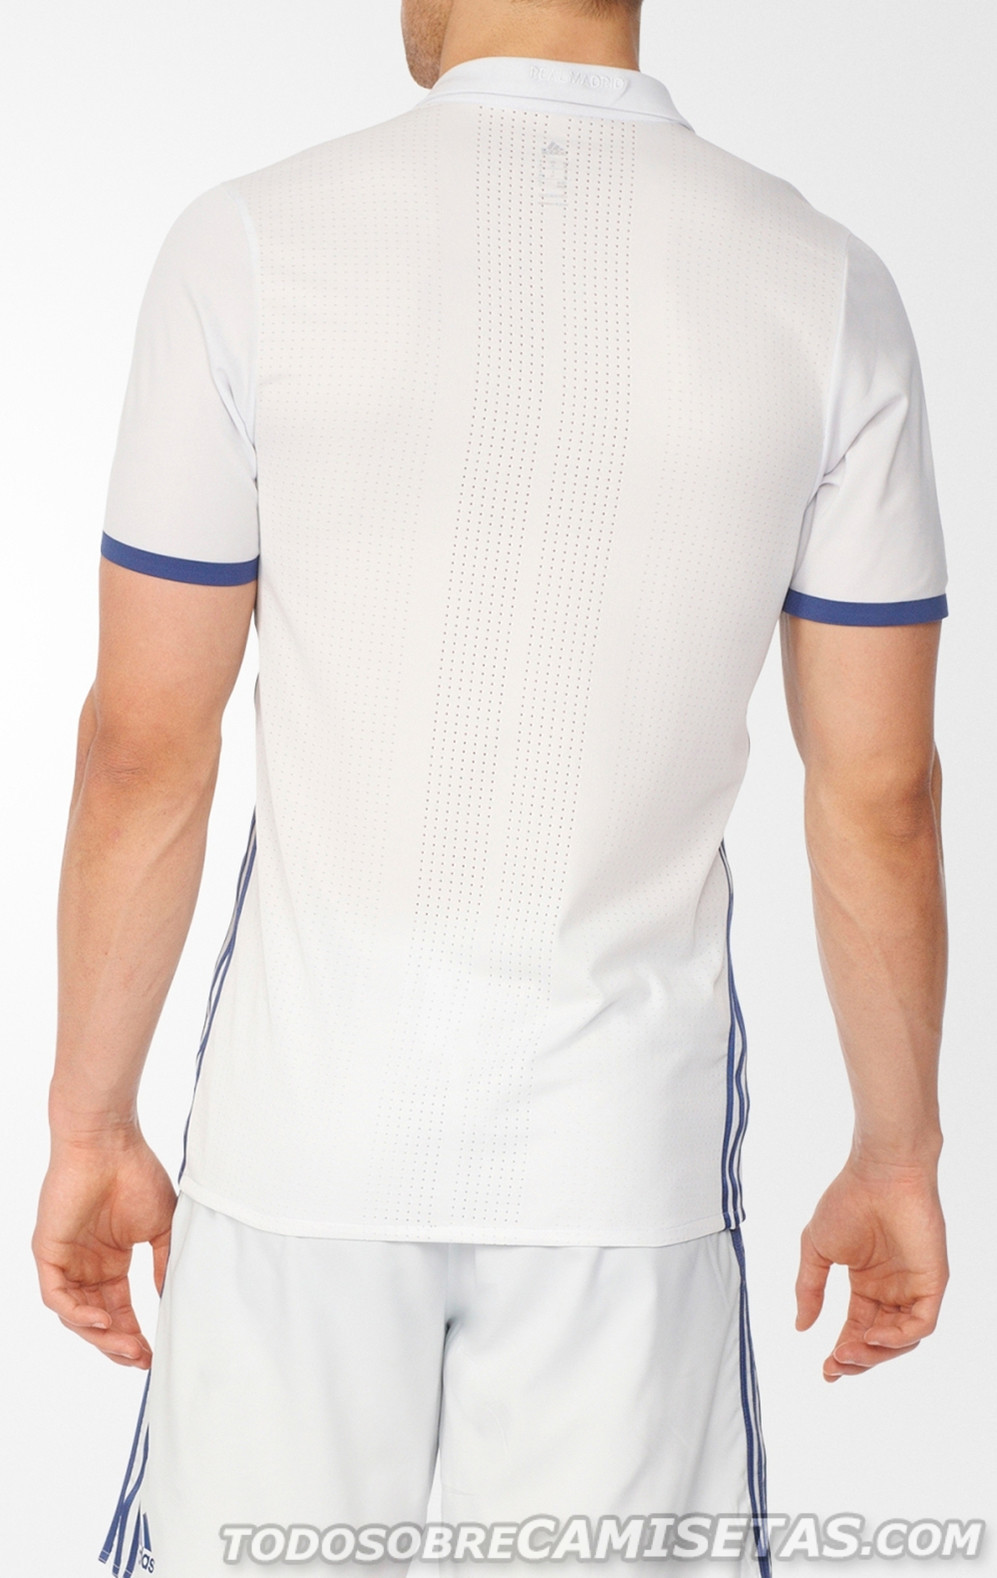 Real-Madrid-2016-17-adidas-new-home-kit-31.jpg